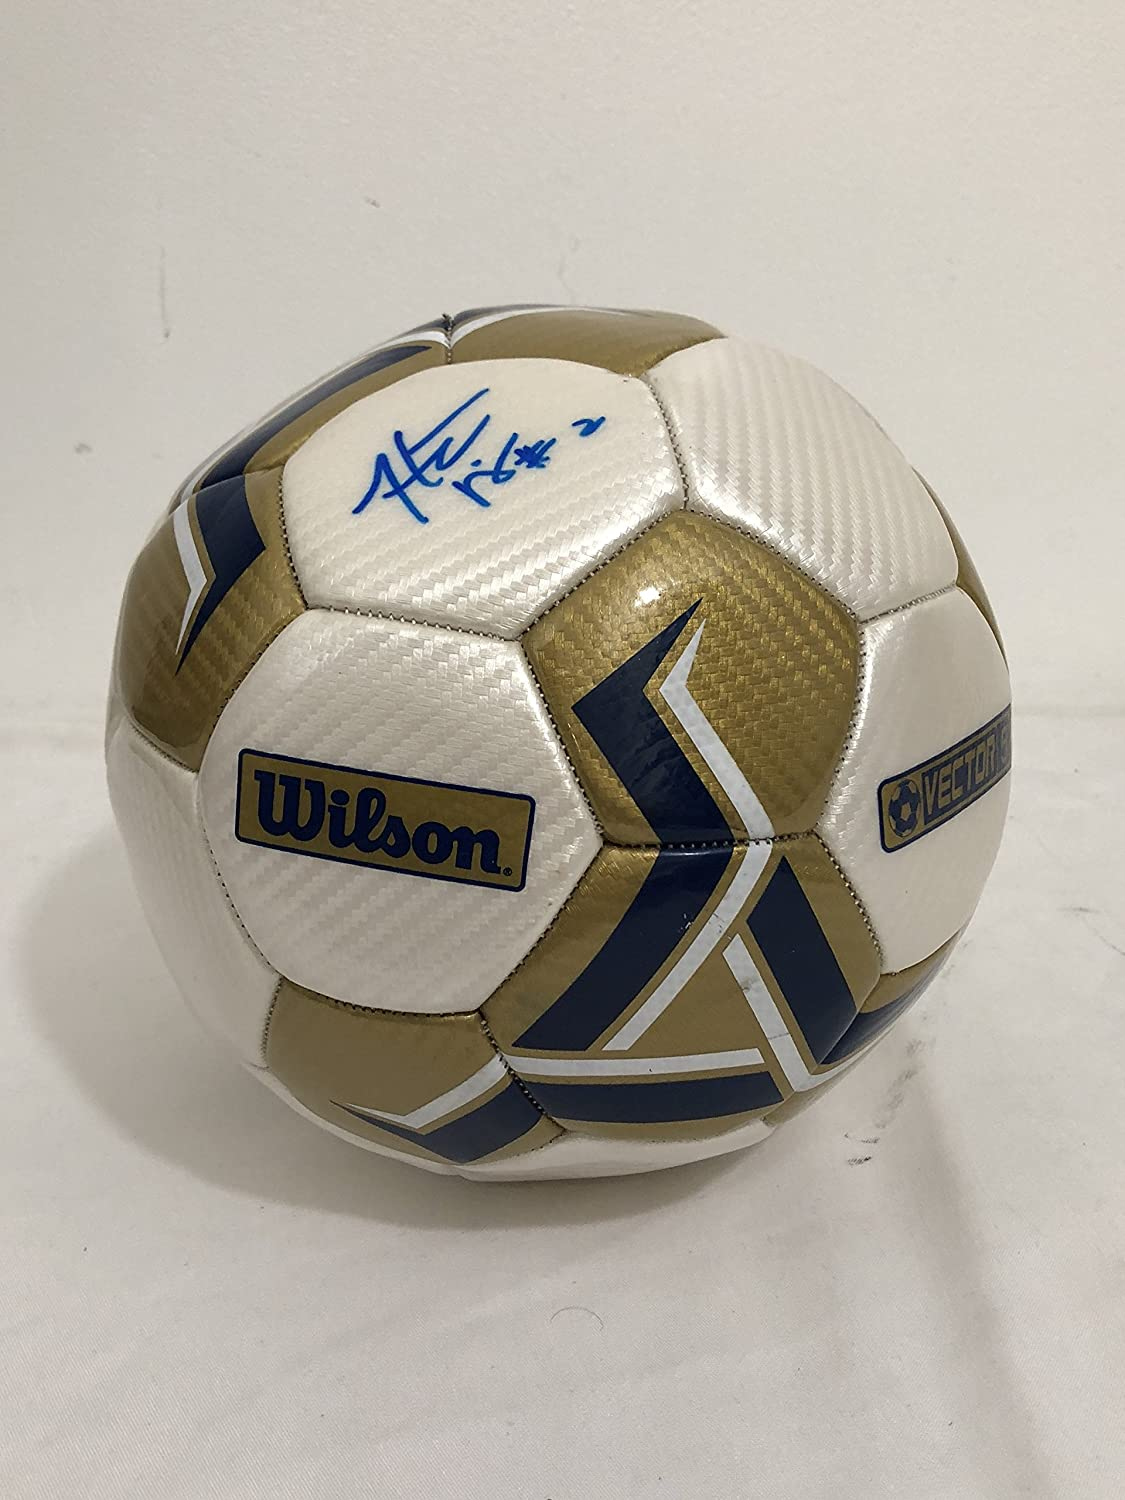 Heather Mitts Team USA San Jose Max 75% OFF Mall Soccer Autographed Wilson B Signed